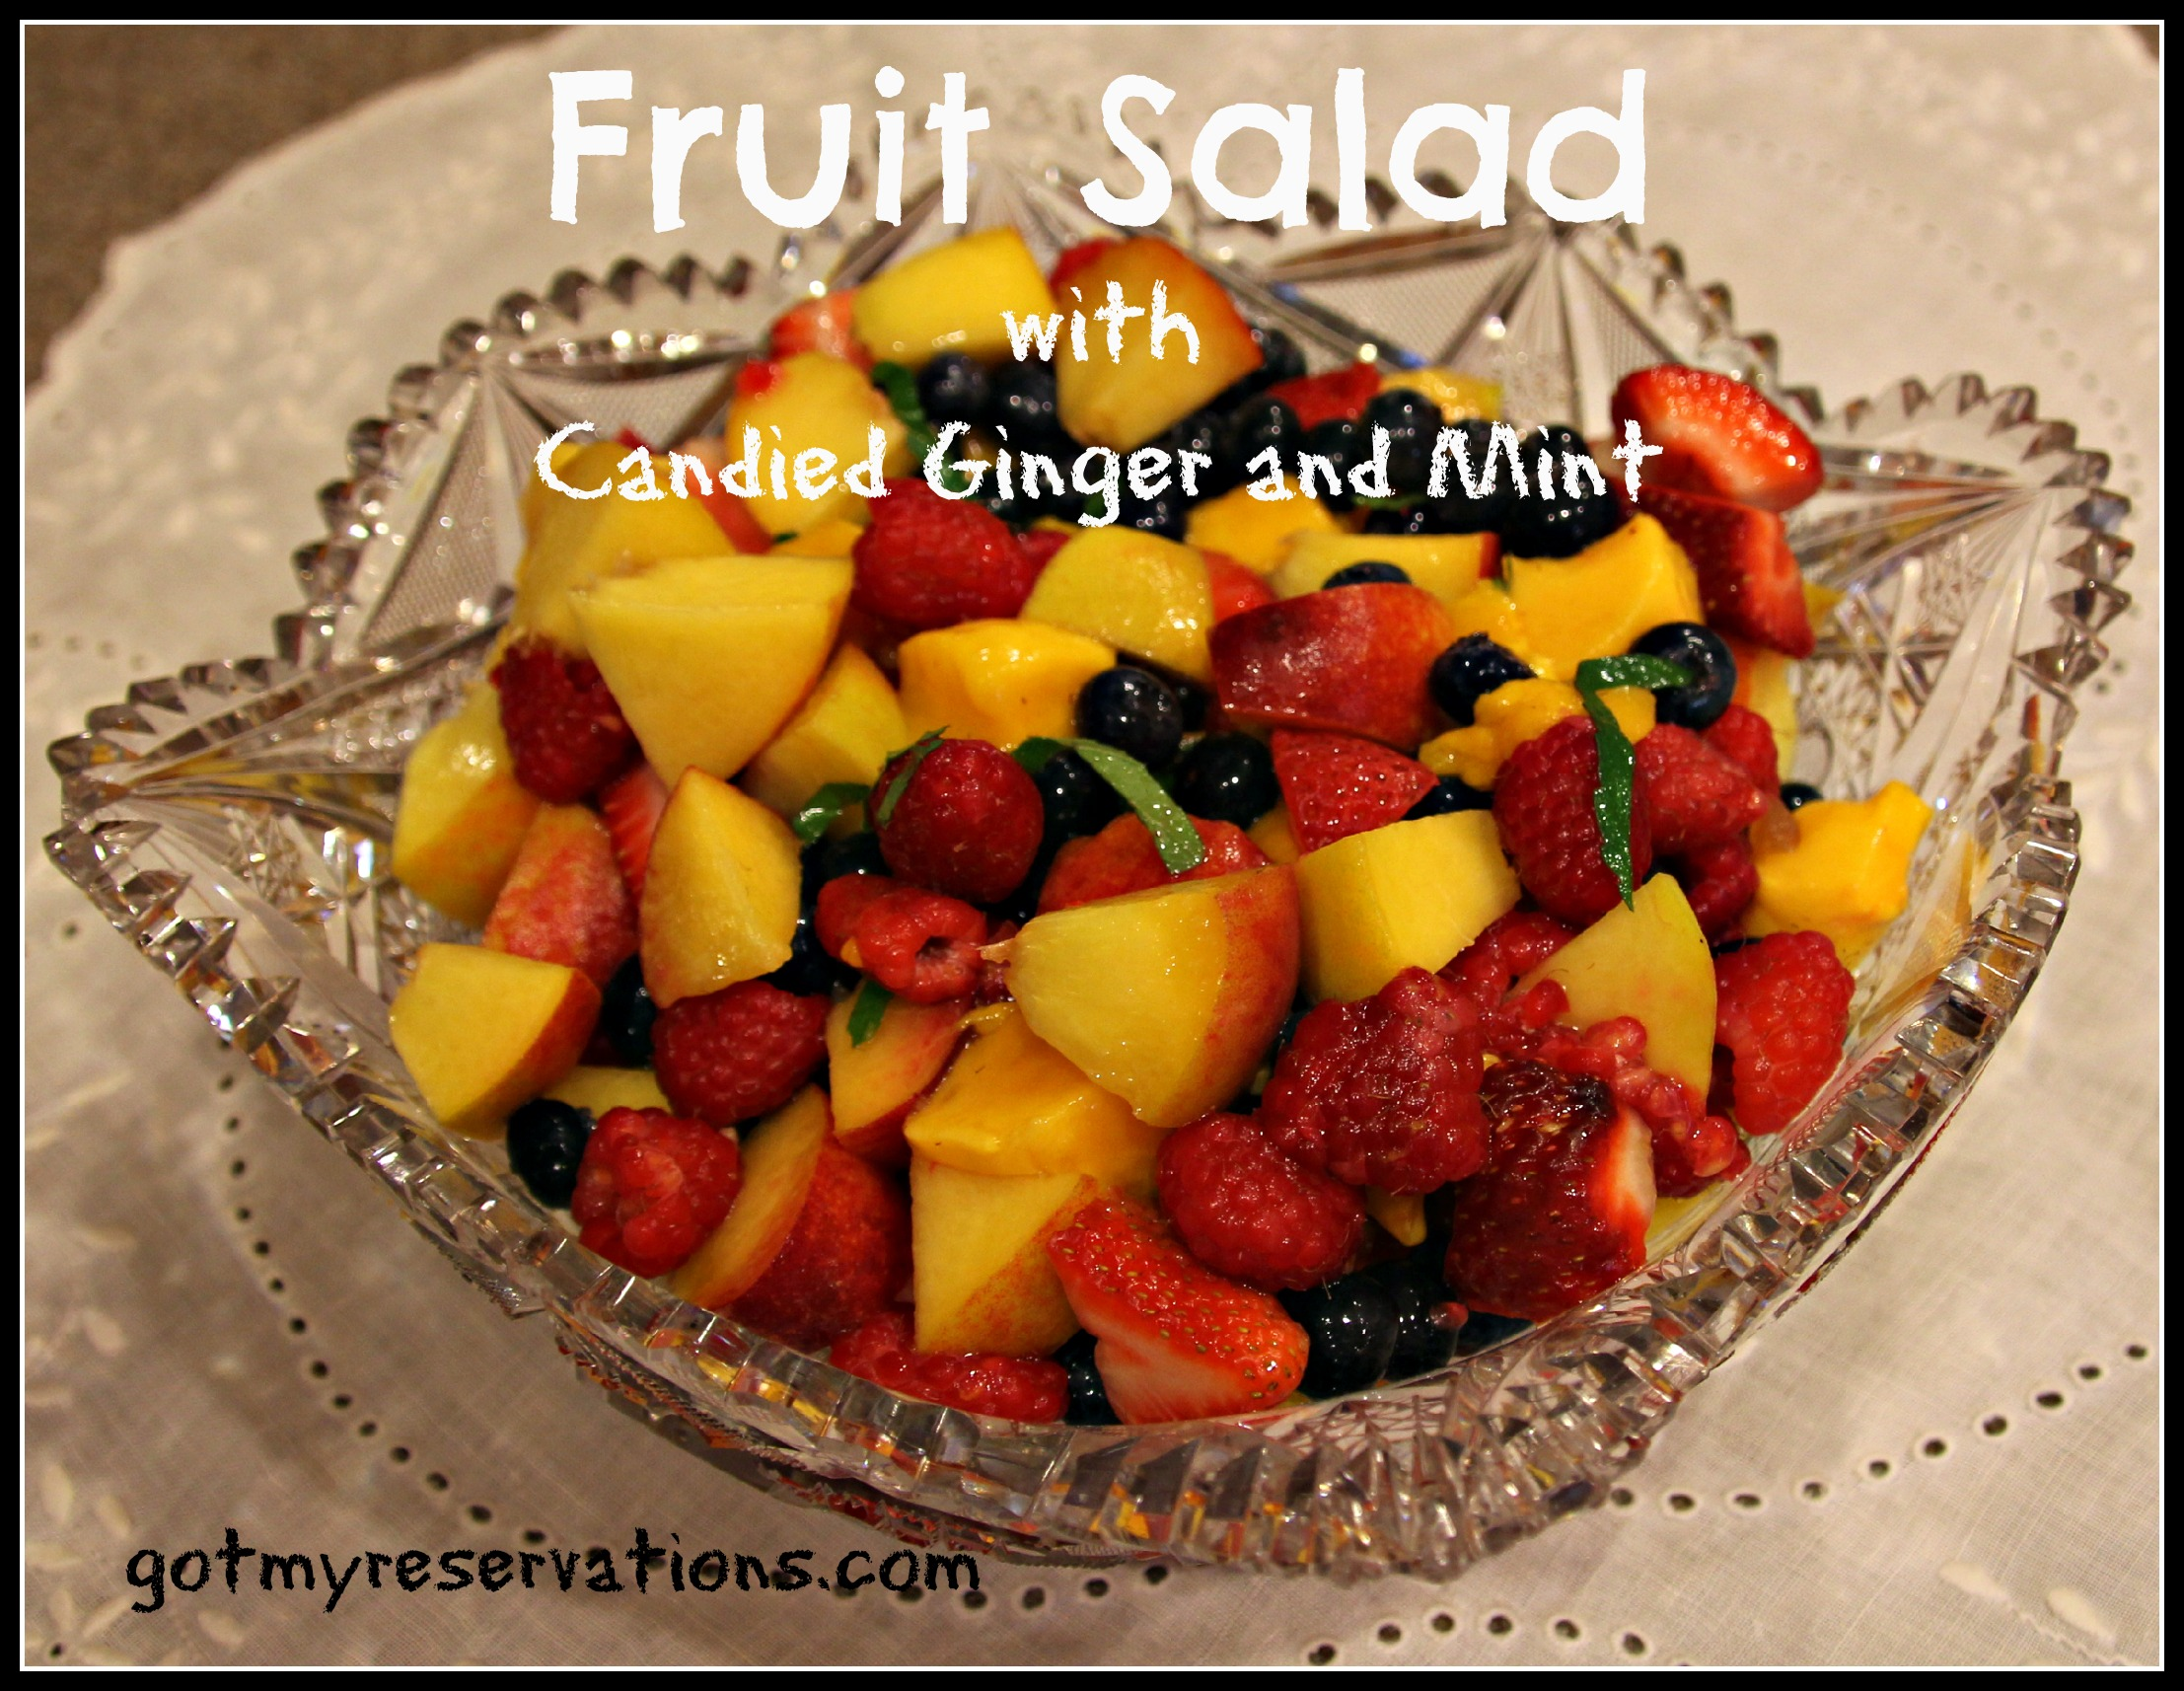 Fruit Salad with Candied Ginger and Mint